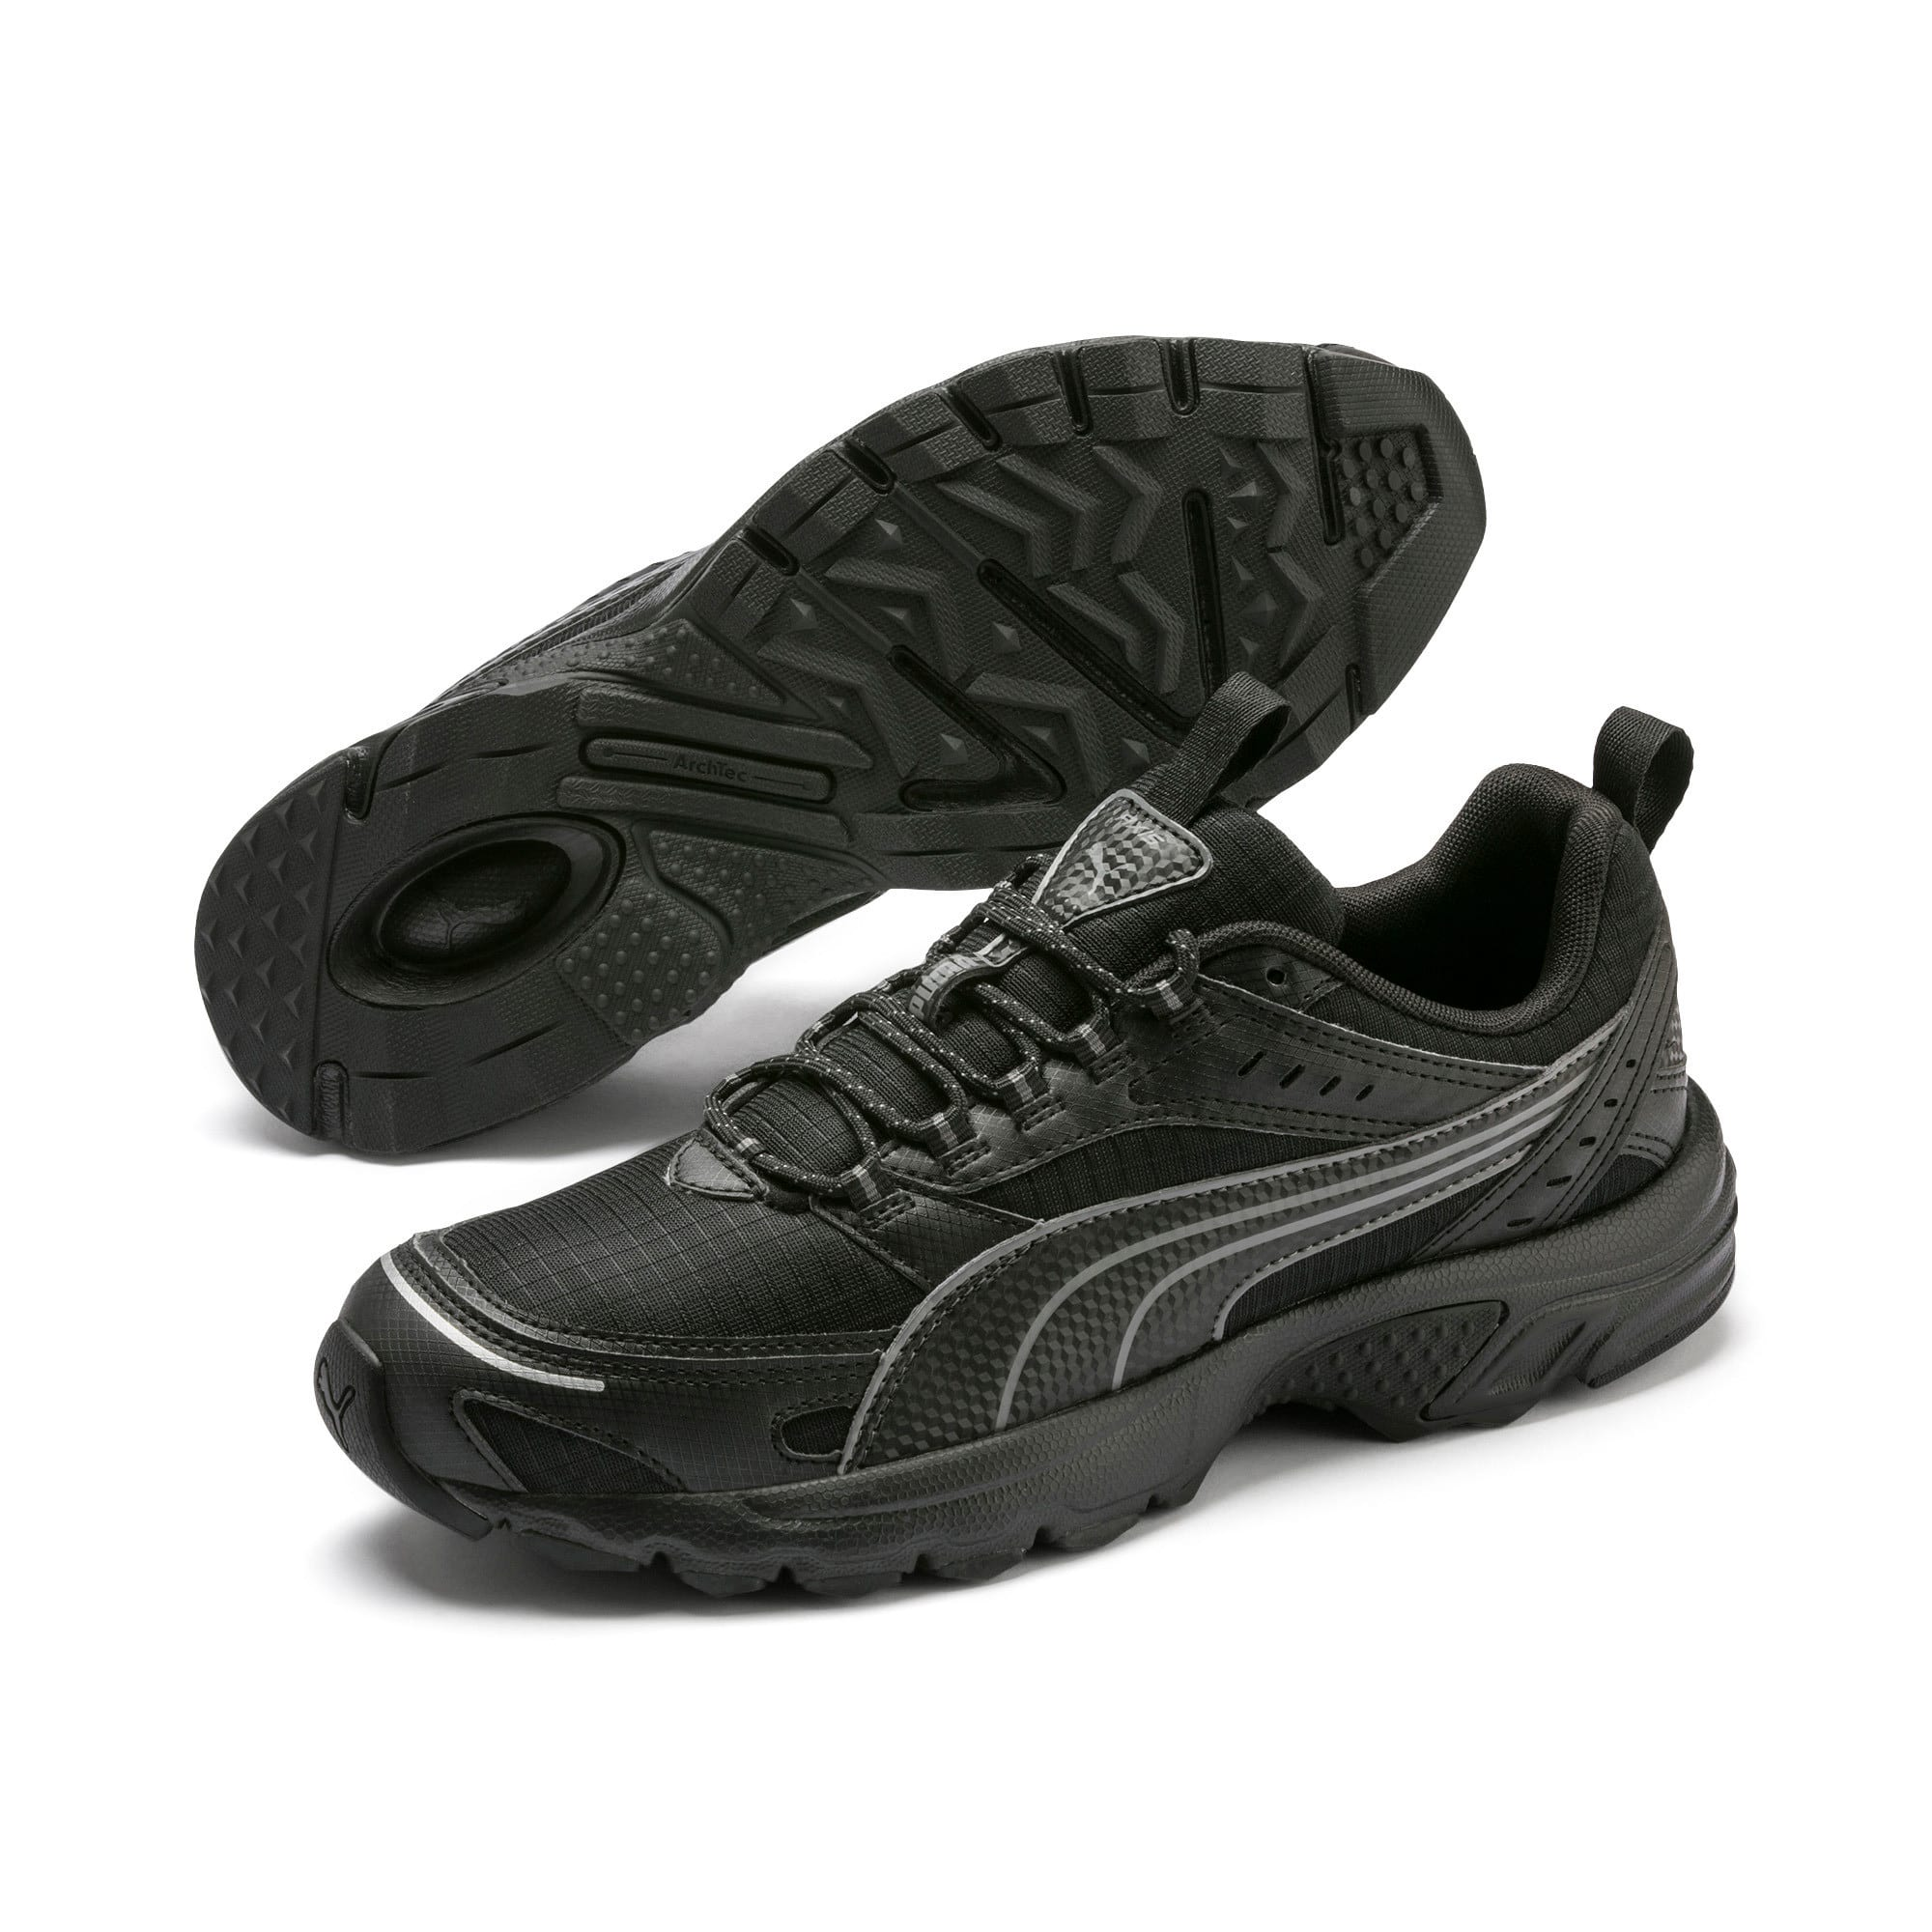 Axis Trail Sneakers, Puma Black-CASTLEROCK-Silver, large